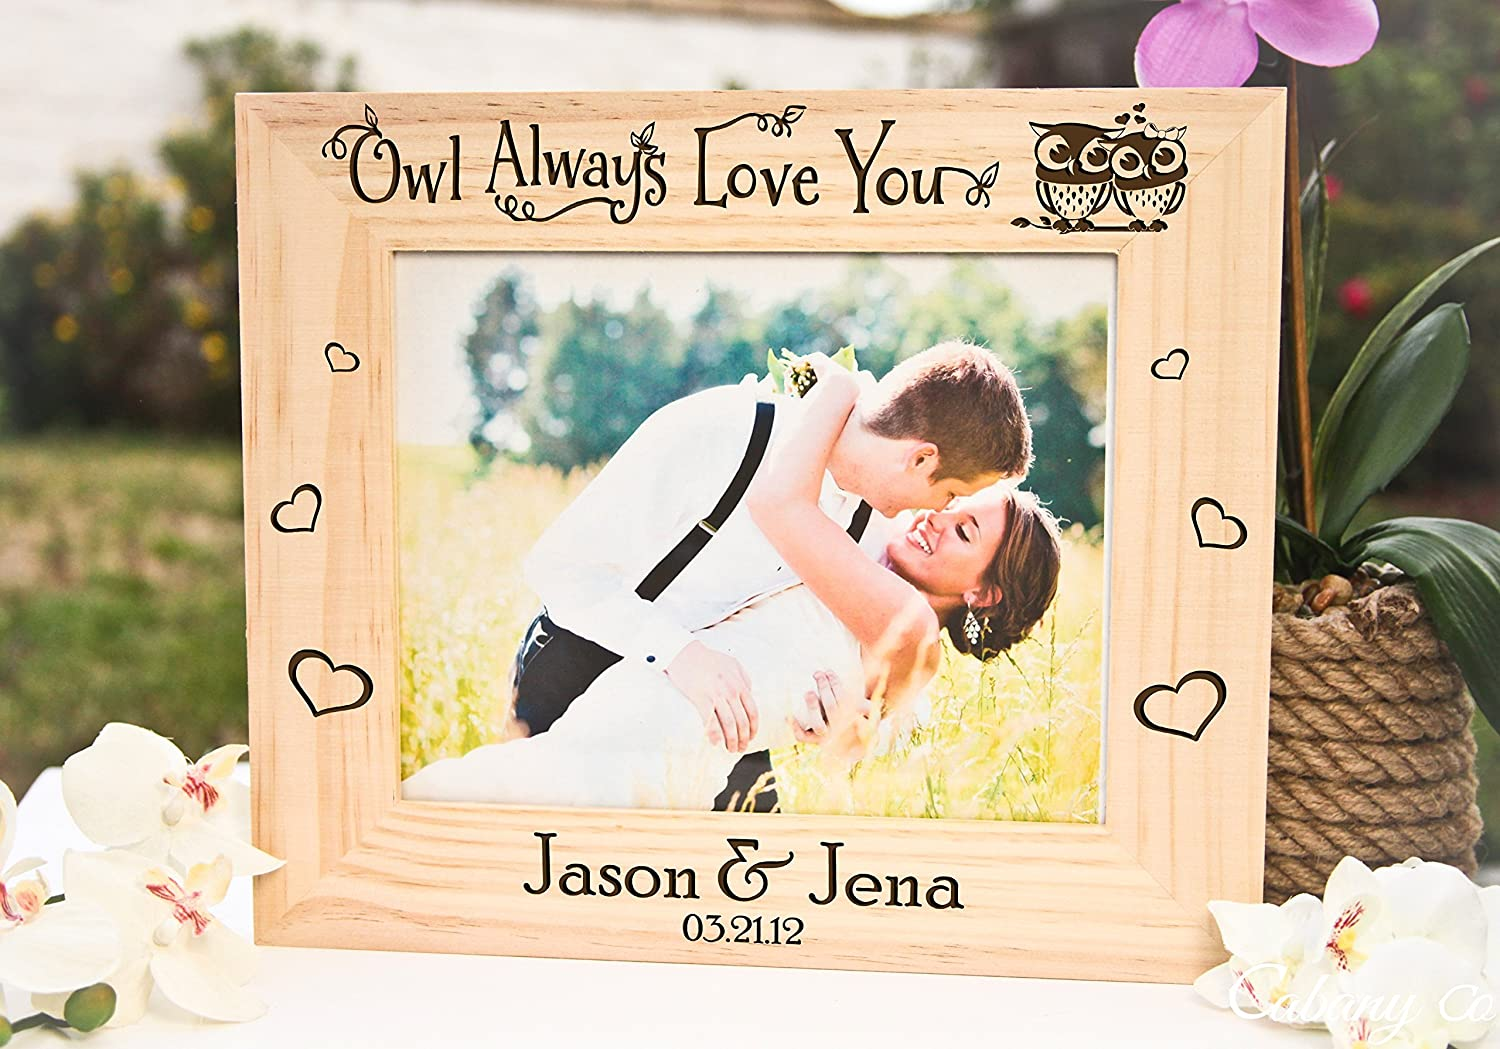 Amazon.com: Personalized Picture Frame - Owl Always Love You: Handmade